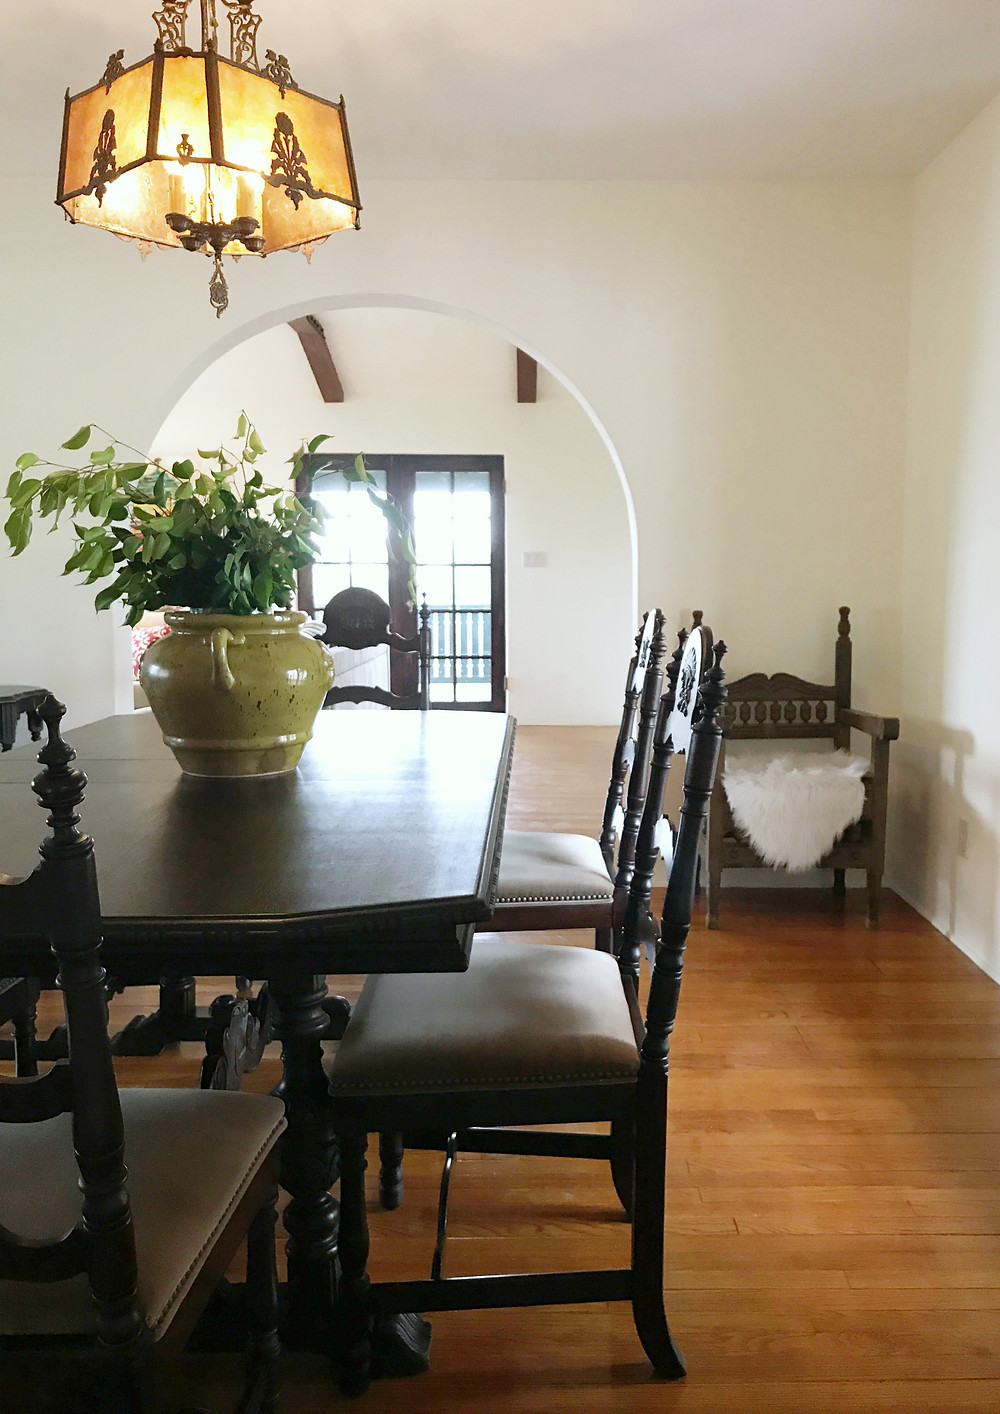 AFTER: Spanish Revival Dining Room